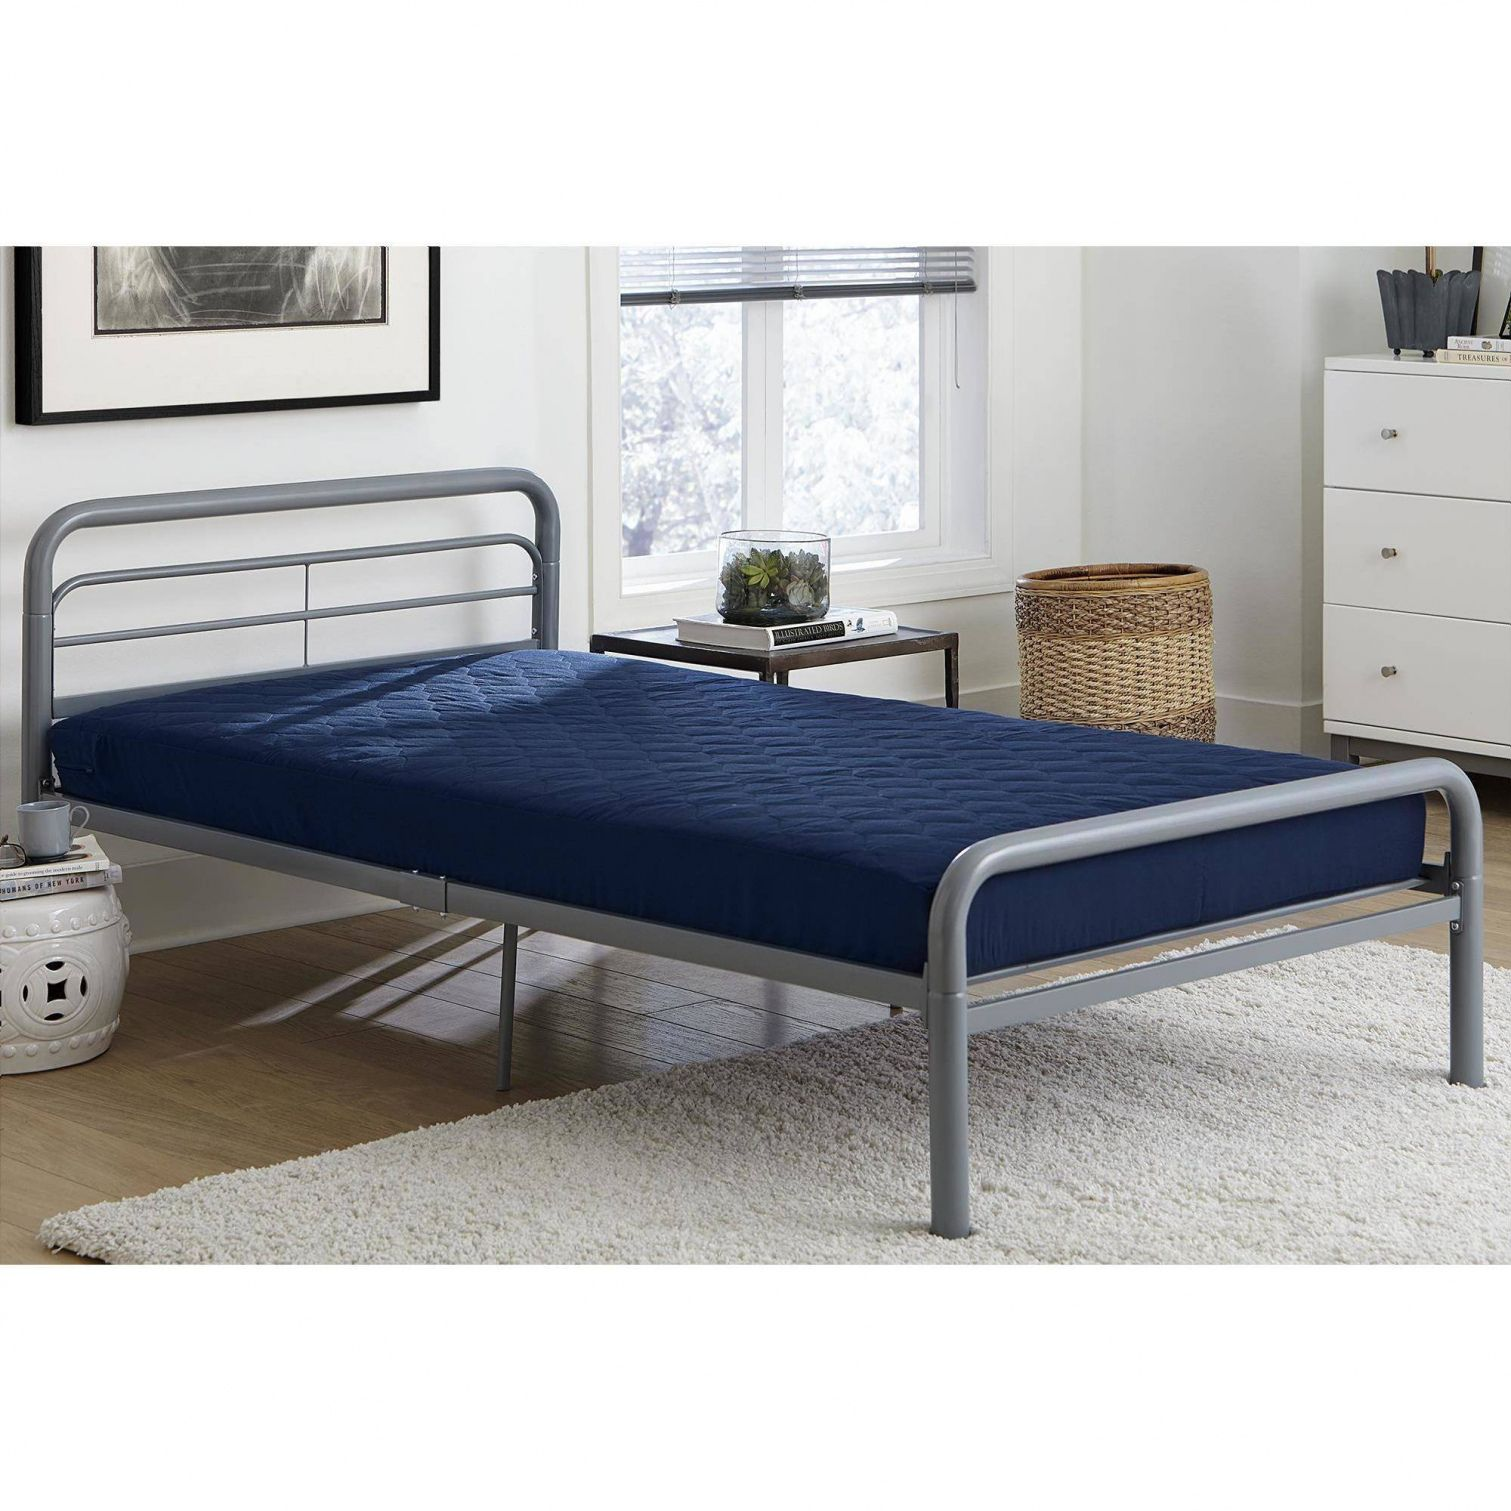 Twin Bunk Bed Mattress - Interior House Paint Ideas Check more at ...